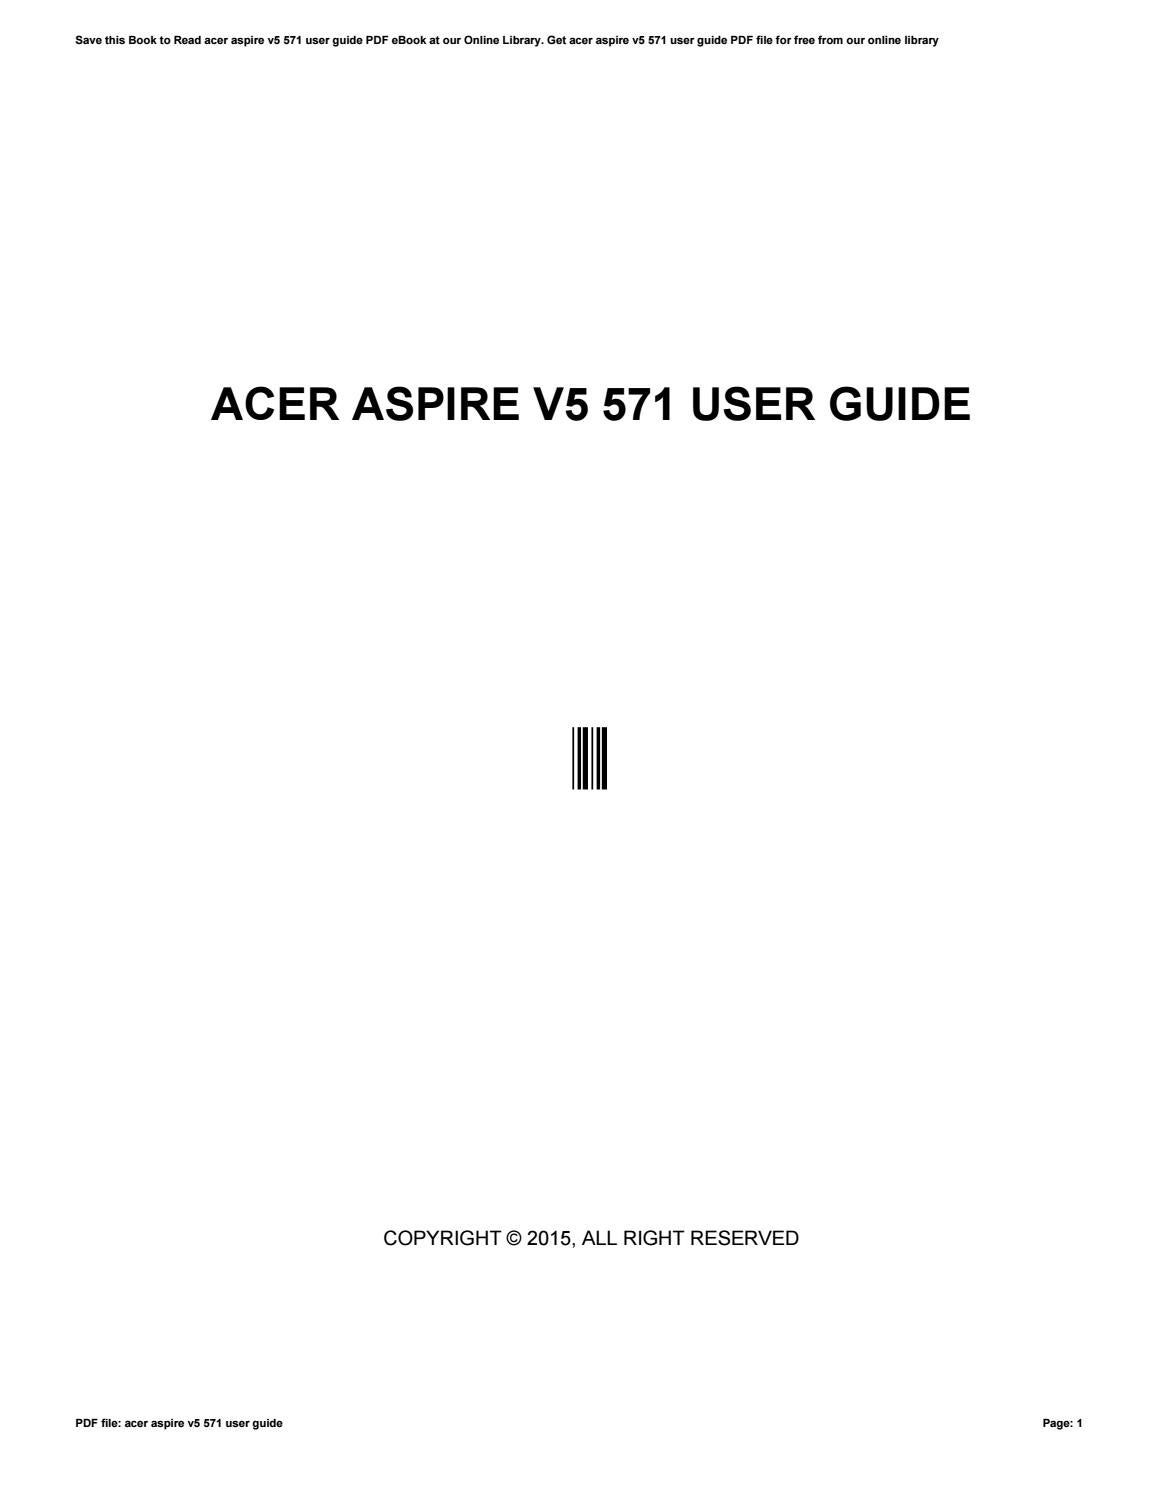 acer aspire v5 571 user manual